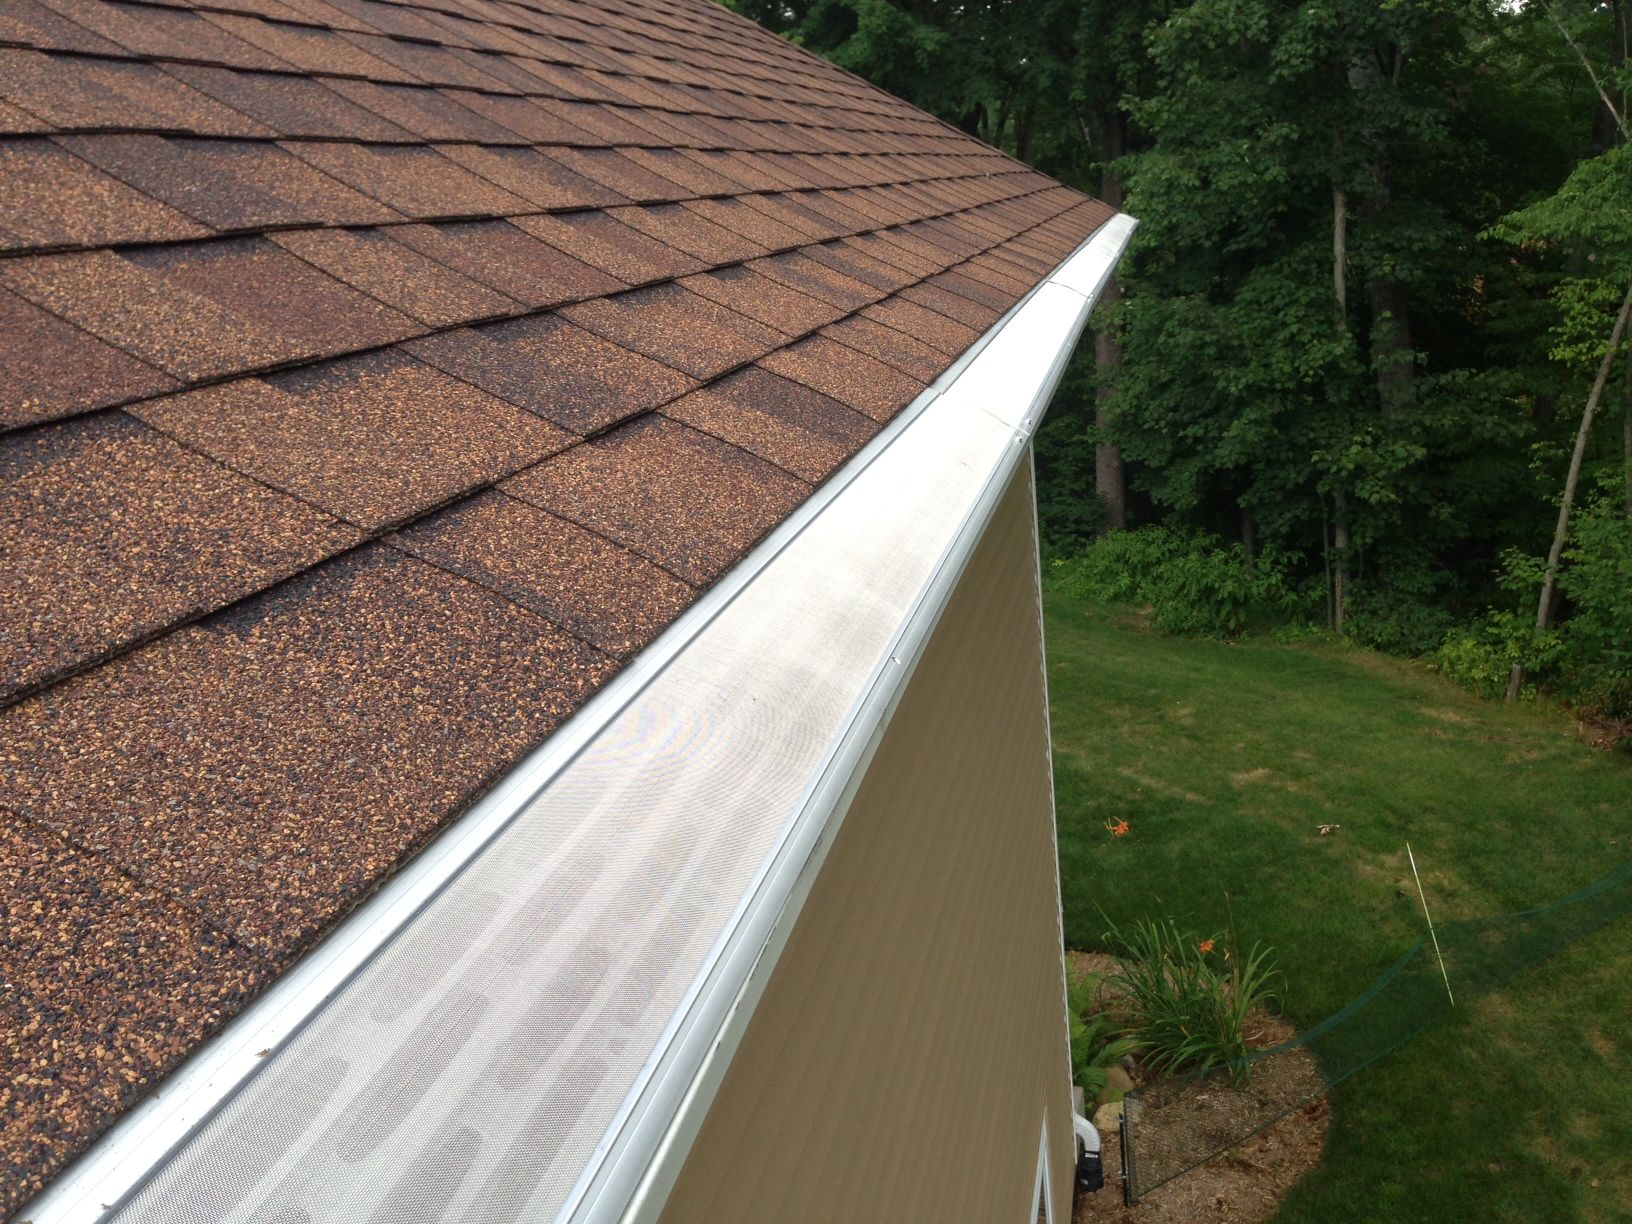 Sweet Installation Of Gutterdome Gd45 Adjustable On A Comp Shingle Roof In The Great State Of Michigan Gutter Guard Cleaning Gutters Clogged Gutter